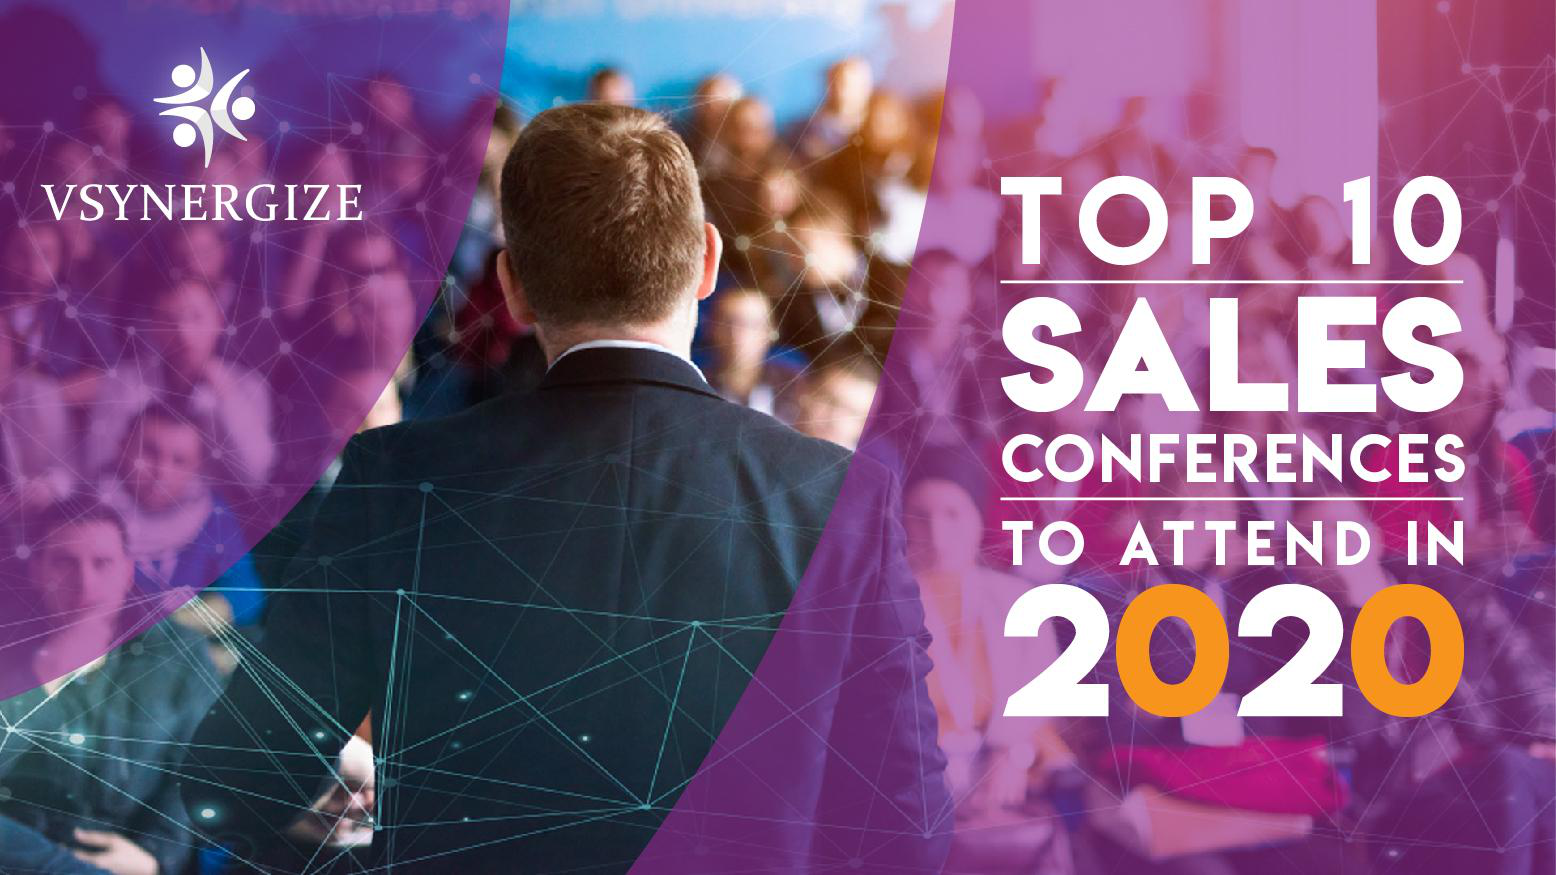 The Sales Conference guides leaders into the future with inspiration and insights. The Sales Conference is the yearly event for B2B executives